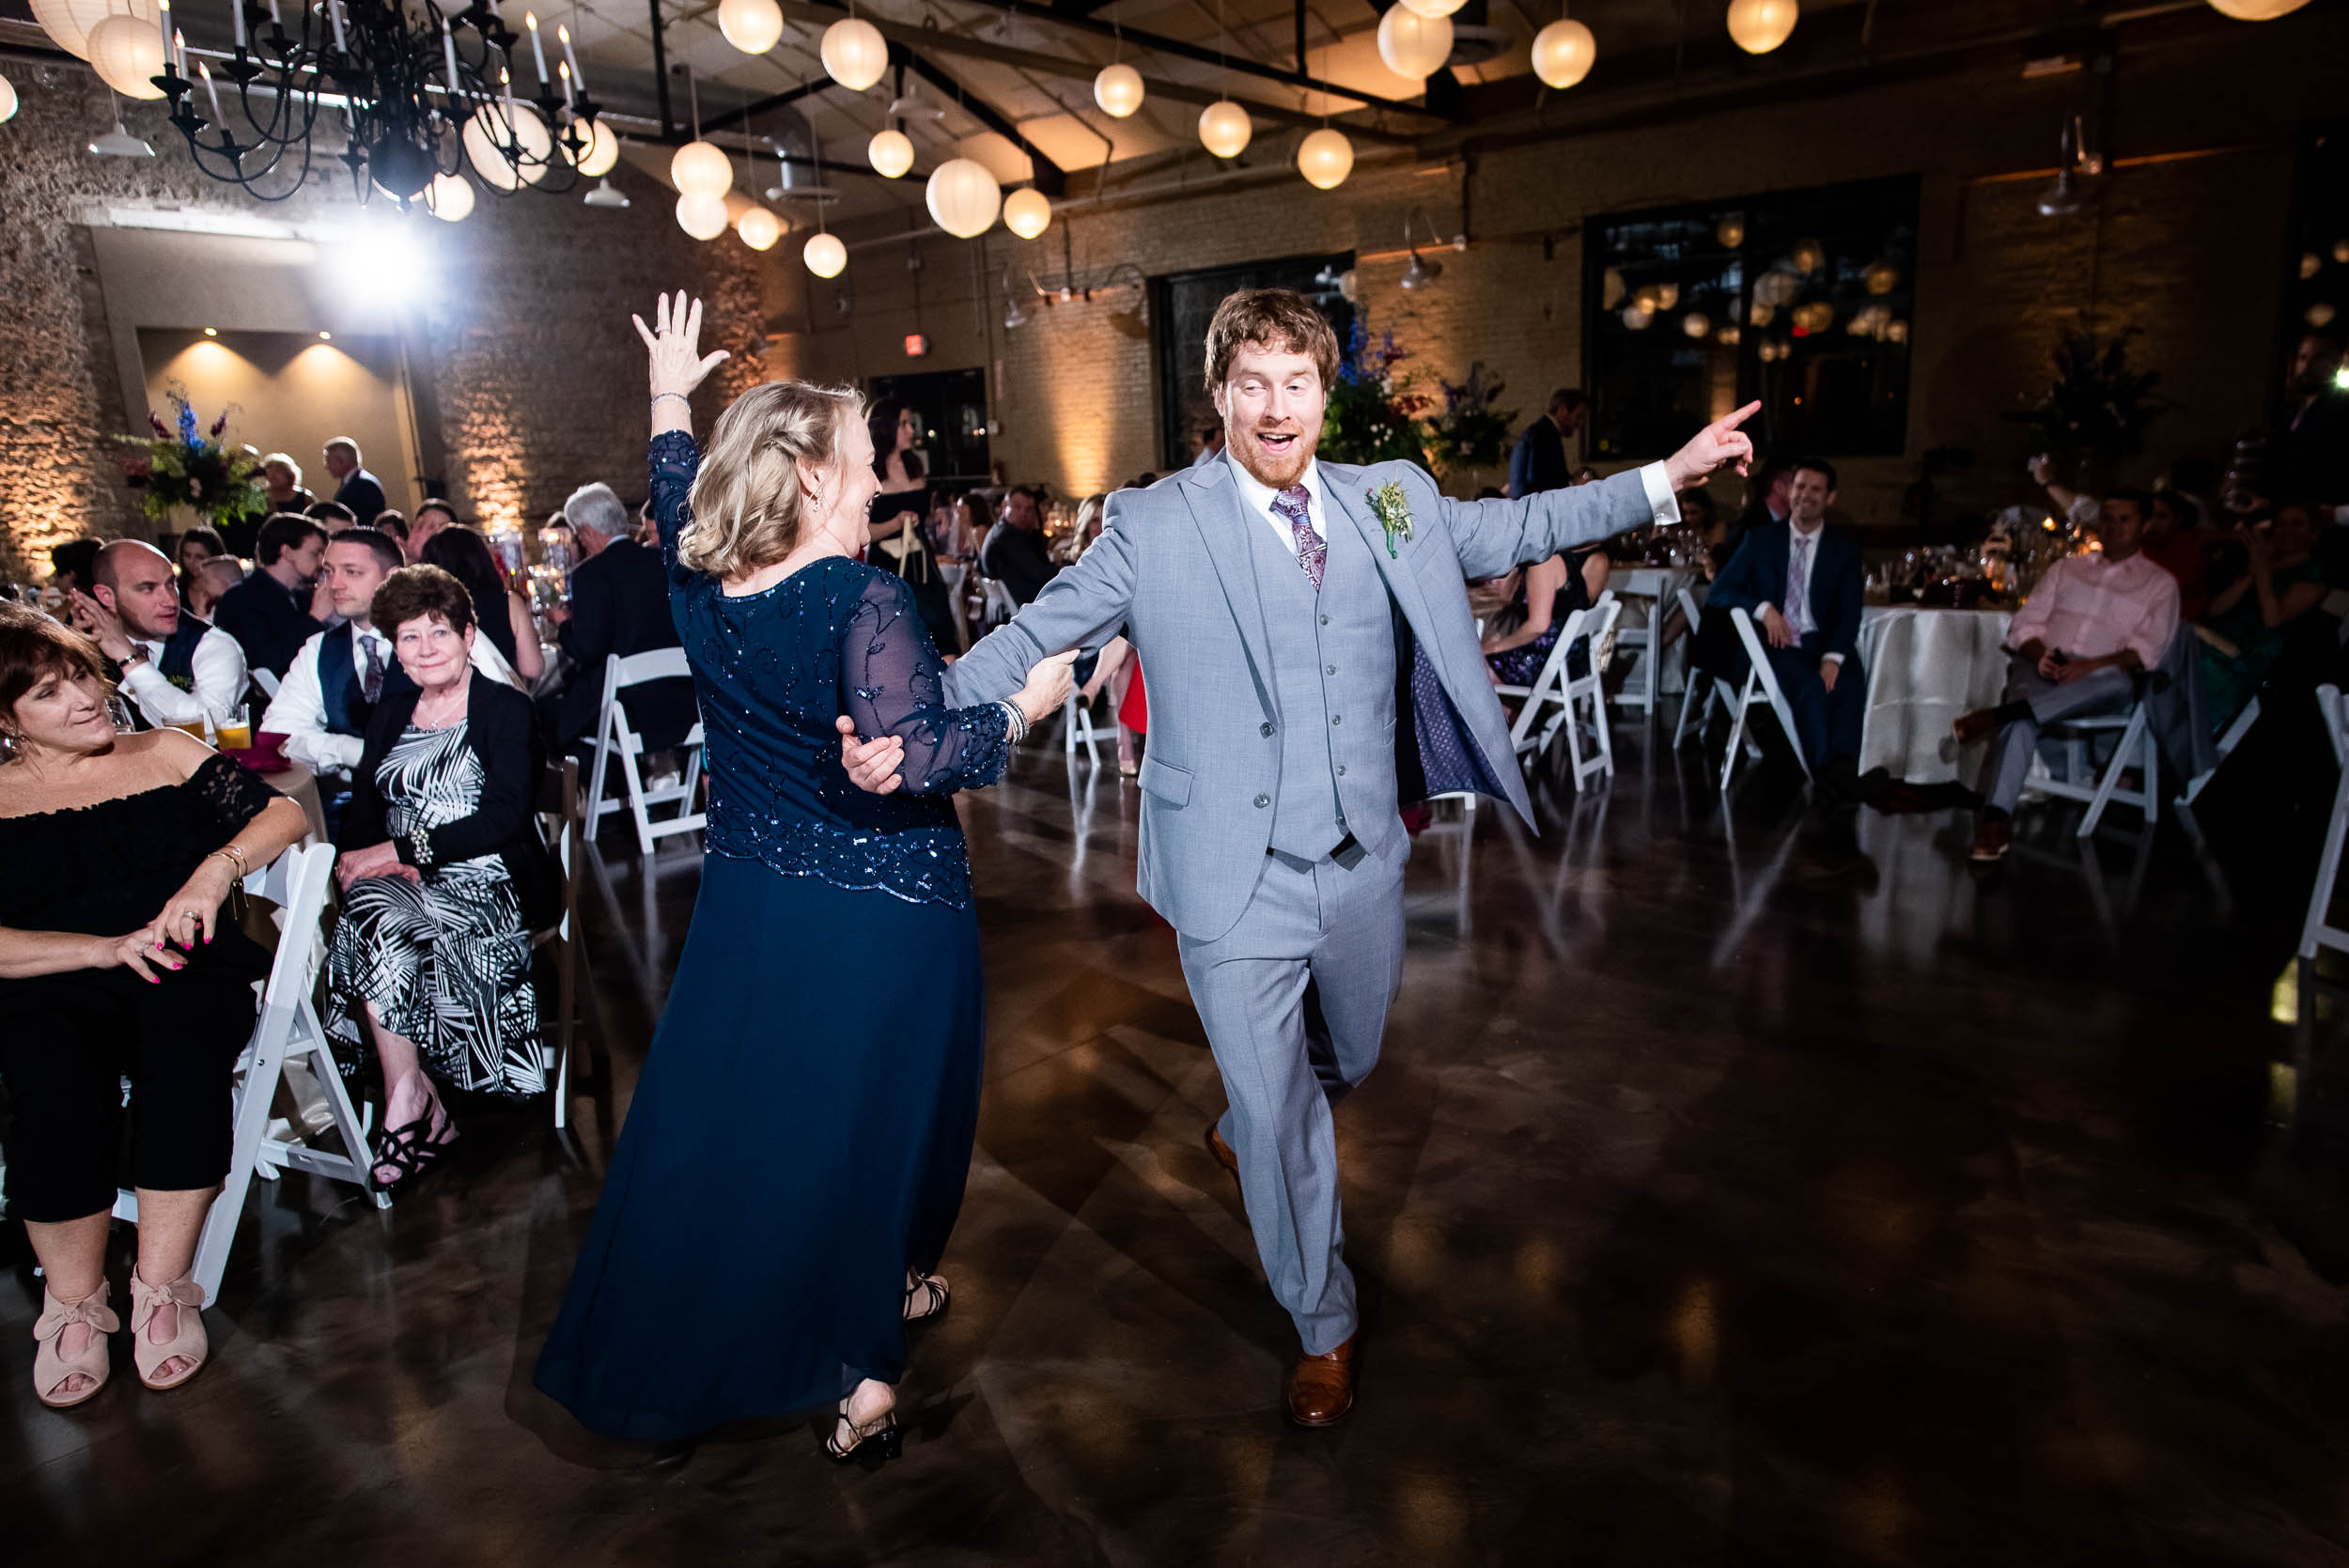 Mother/son dance: Modern industrial Chicago wedding inside Prairie Street Brewhouse captured by J. Brown Photography. Find more wedding ideas at jbrownphotography.com!